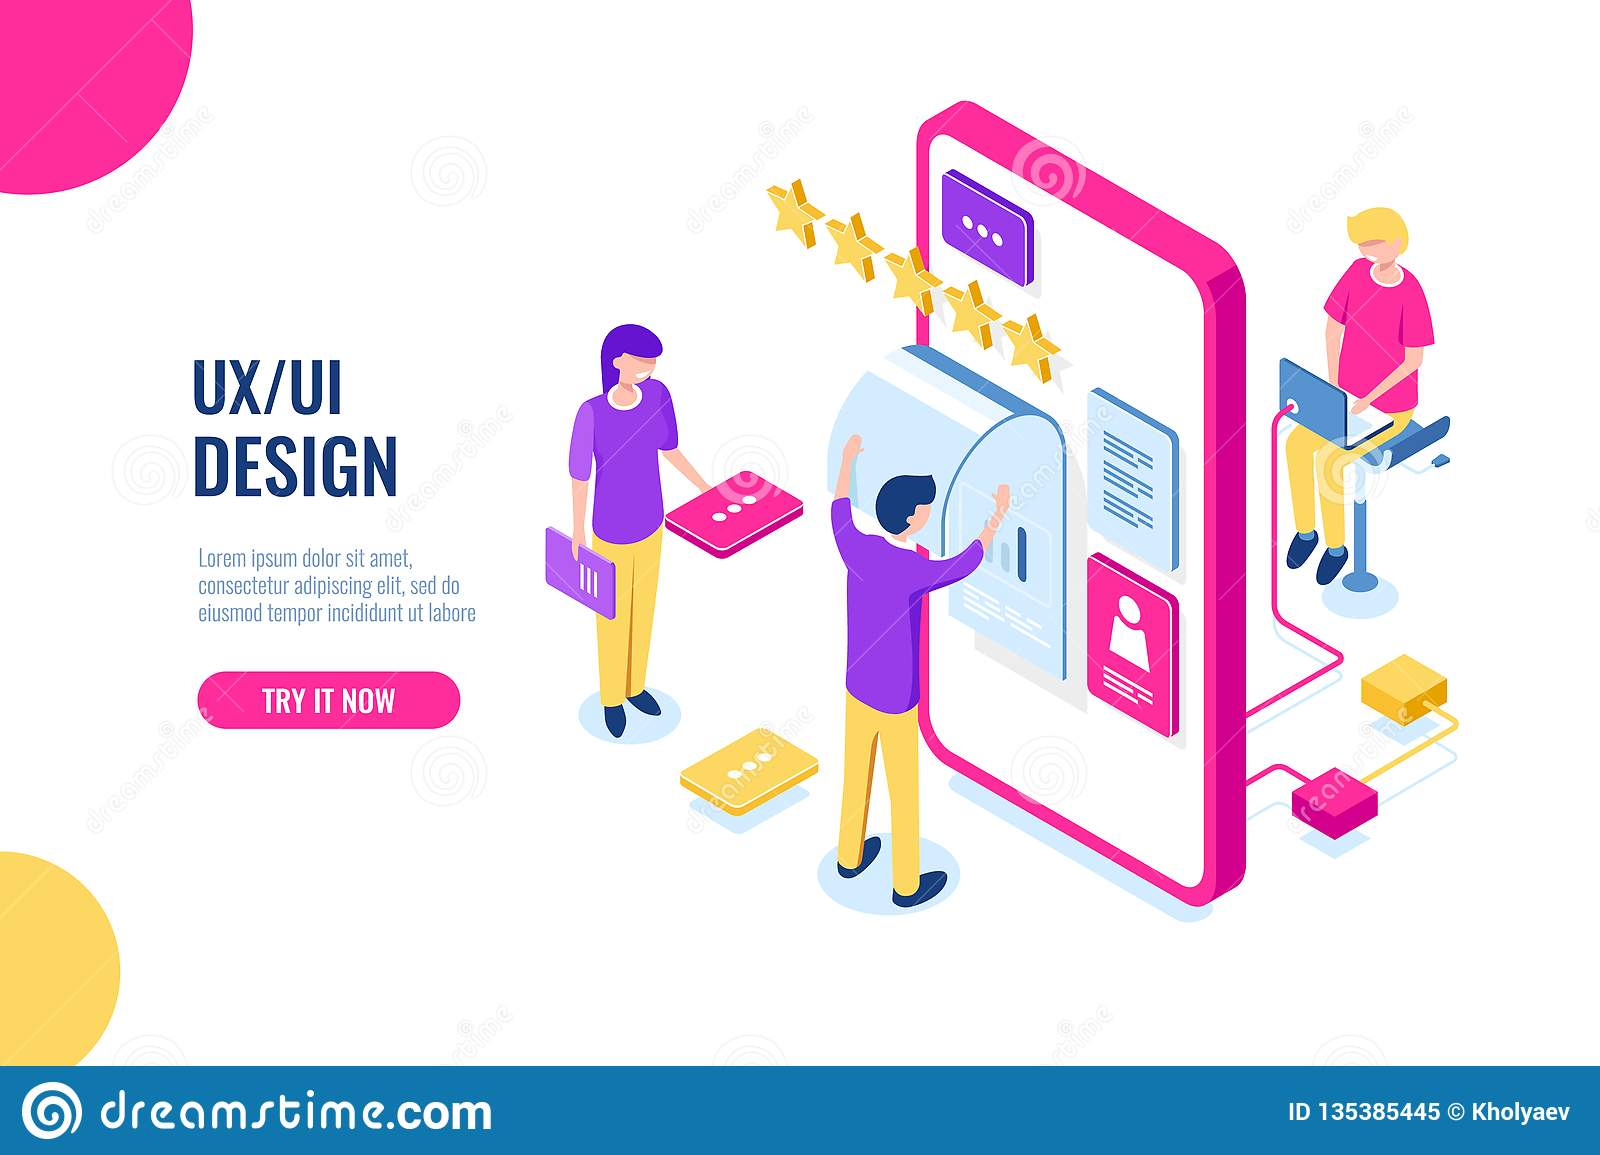 UX UI Design, mobile development application, user interface building, mobile phone screen, people work and help